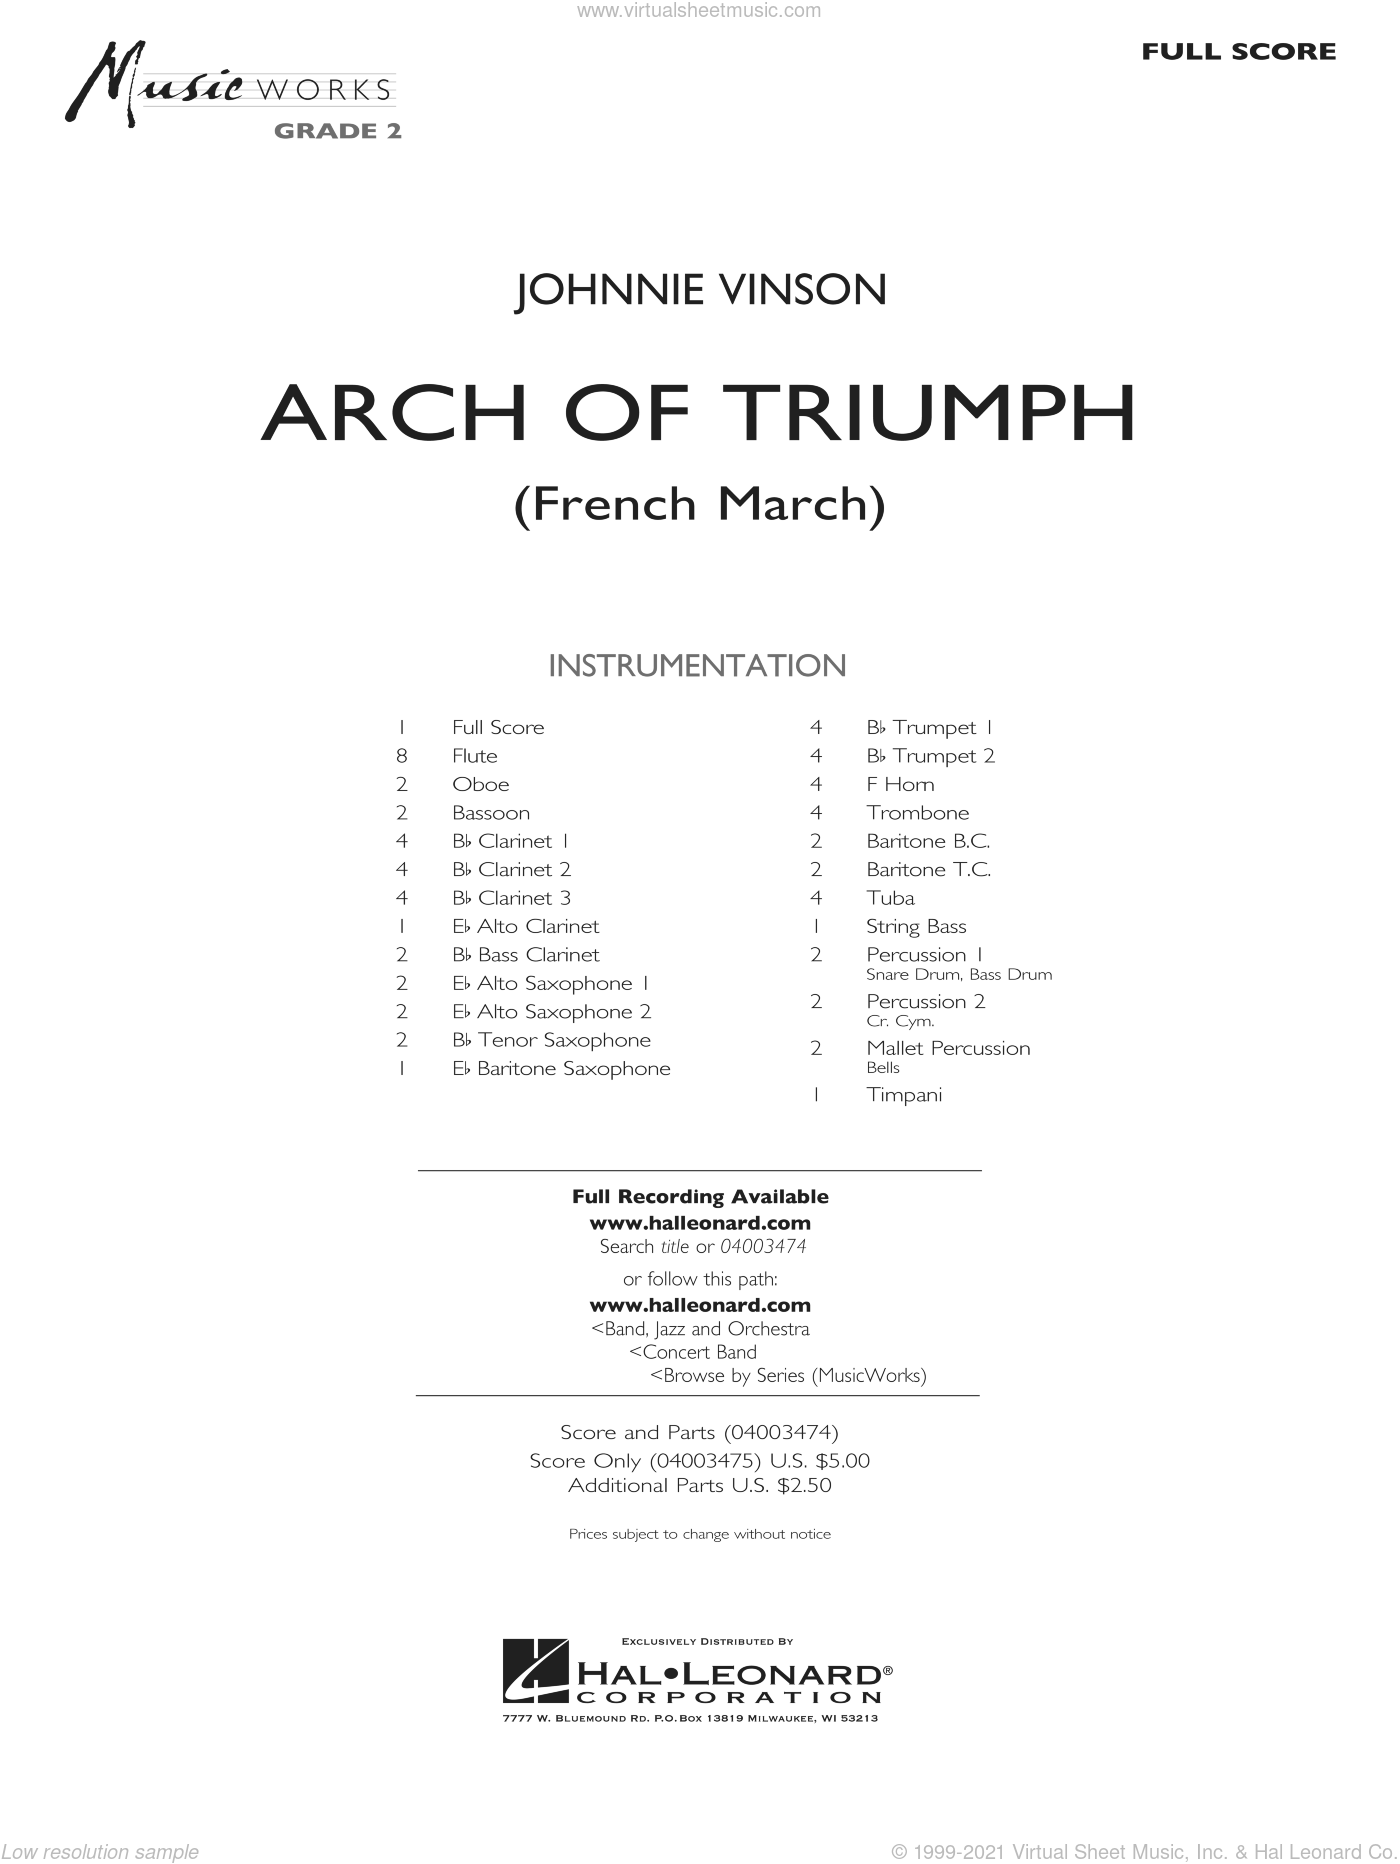 Arch of Triumph (French March) sheet music for concert band (full score) by Johnnie Vinson